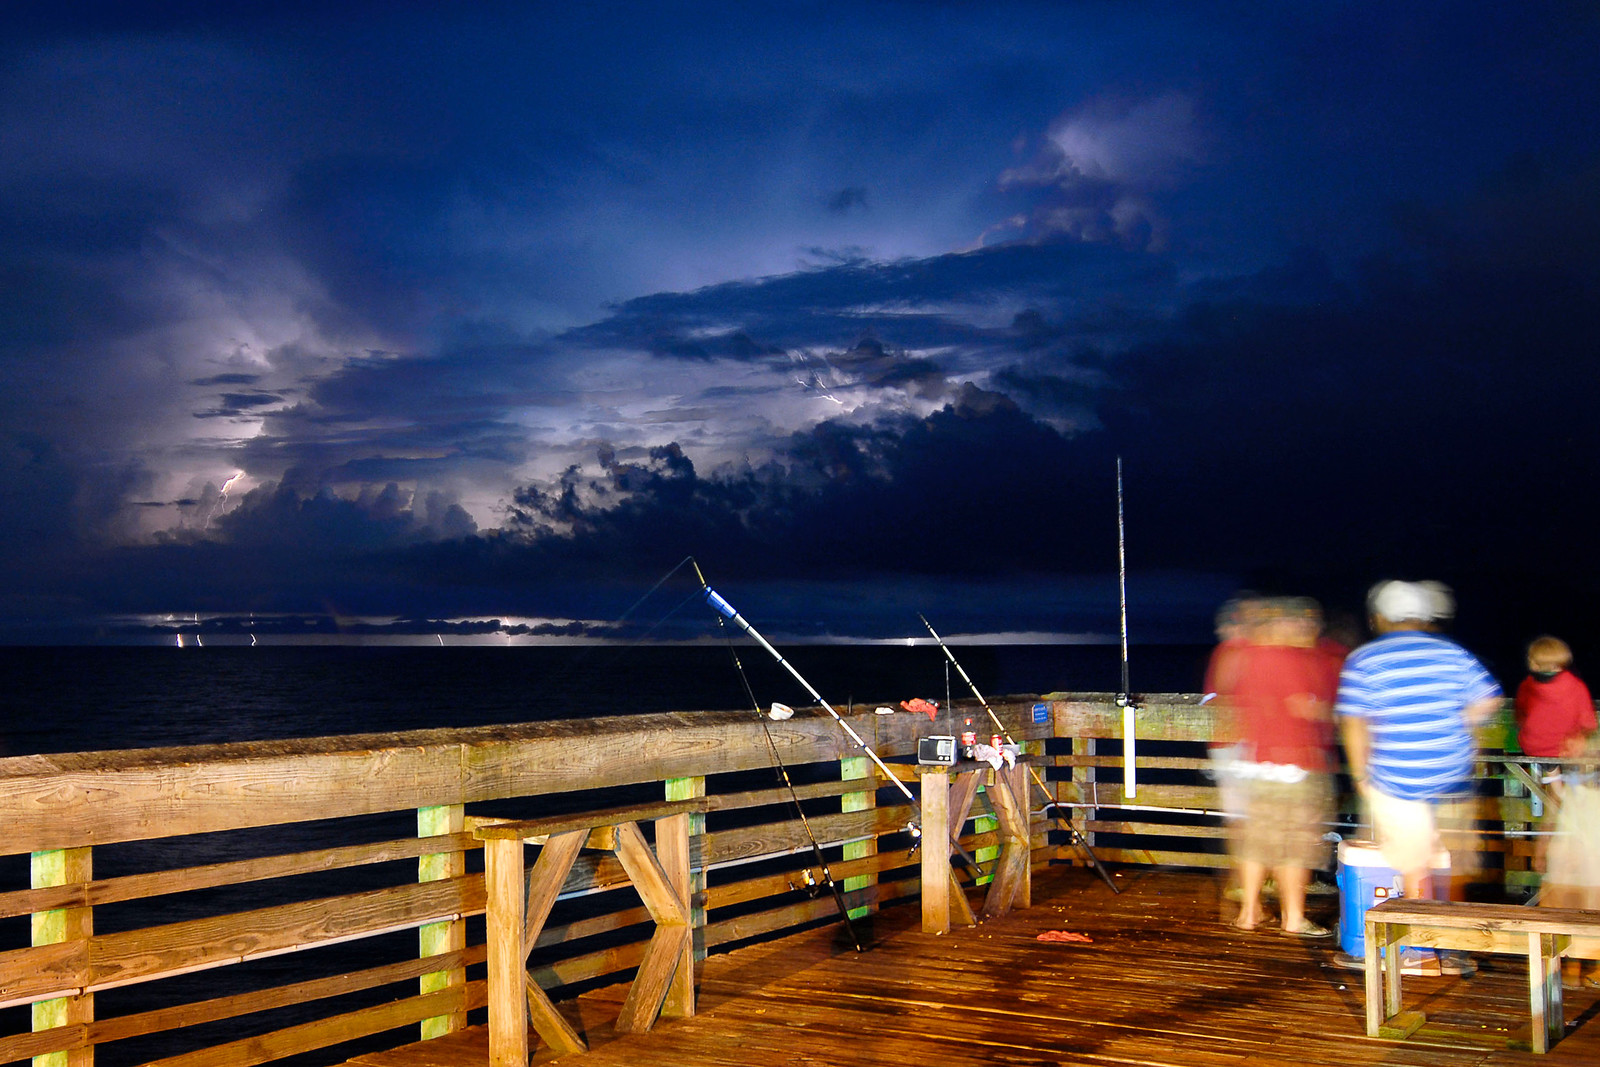 People enjoy fishing on Pier 14 as well as the view of a thunderstorm as several bolts of lightning flash across the horizon at sea in Myrtle Beach, SC on Wednesday, July 11, 2012. Copyright 2012 Jason Barnette